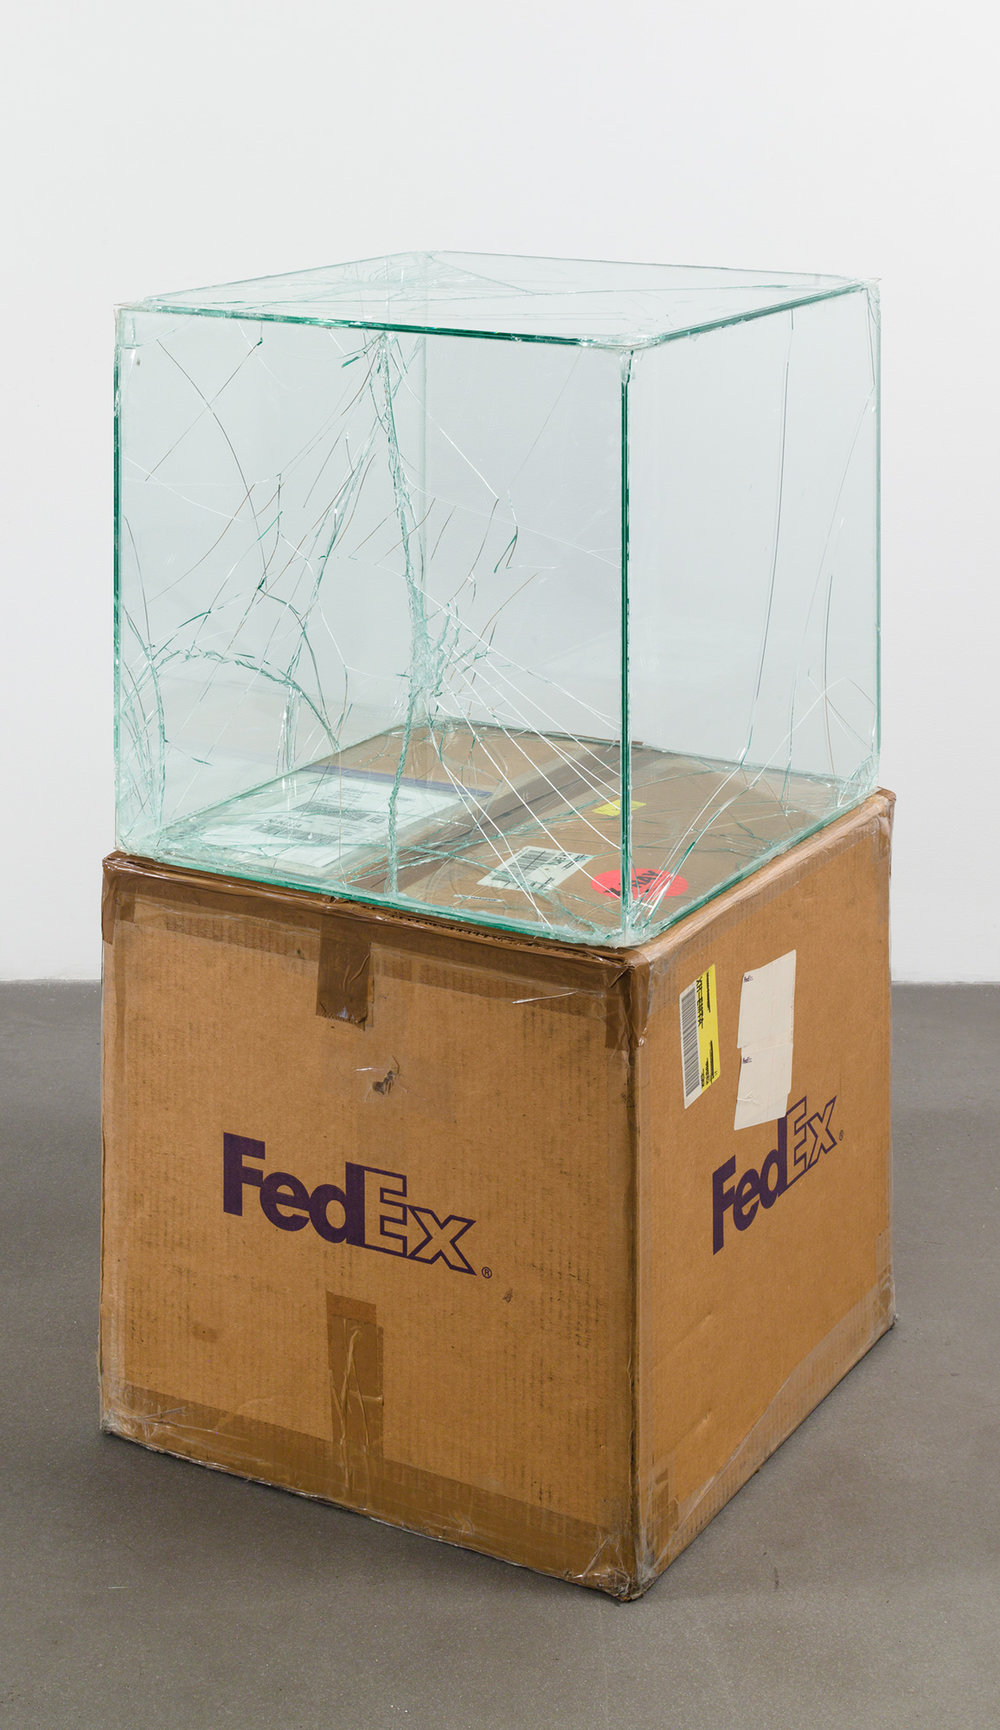 FedEx® Large Kraft Box  © 2005 FEDEX 330508 REV 10/05 SSCC, International Priority, Los Angeles–Brussels trk#865282057975, October 27–30, 2008, International Priority, Brussels–Los Angeles trk#866071746396, December 8–9, 2008, Standard Overnight, Los Angeles–New York trk#774901659423, November 4–5, 2015, Standard Overnight, New York–Los Angeles trk#775241449093, December 21–22, 2015    2008–   Laminated glass, FedEx shipping box, accrued FedEx shipping and tracking labels, silicone, metal, tape  20 x 20 x 20 inches   Industrial Pictures, 2008    Great Hall Exhibition, 2015